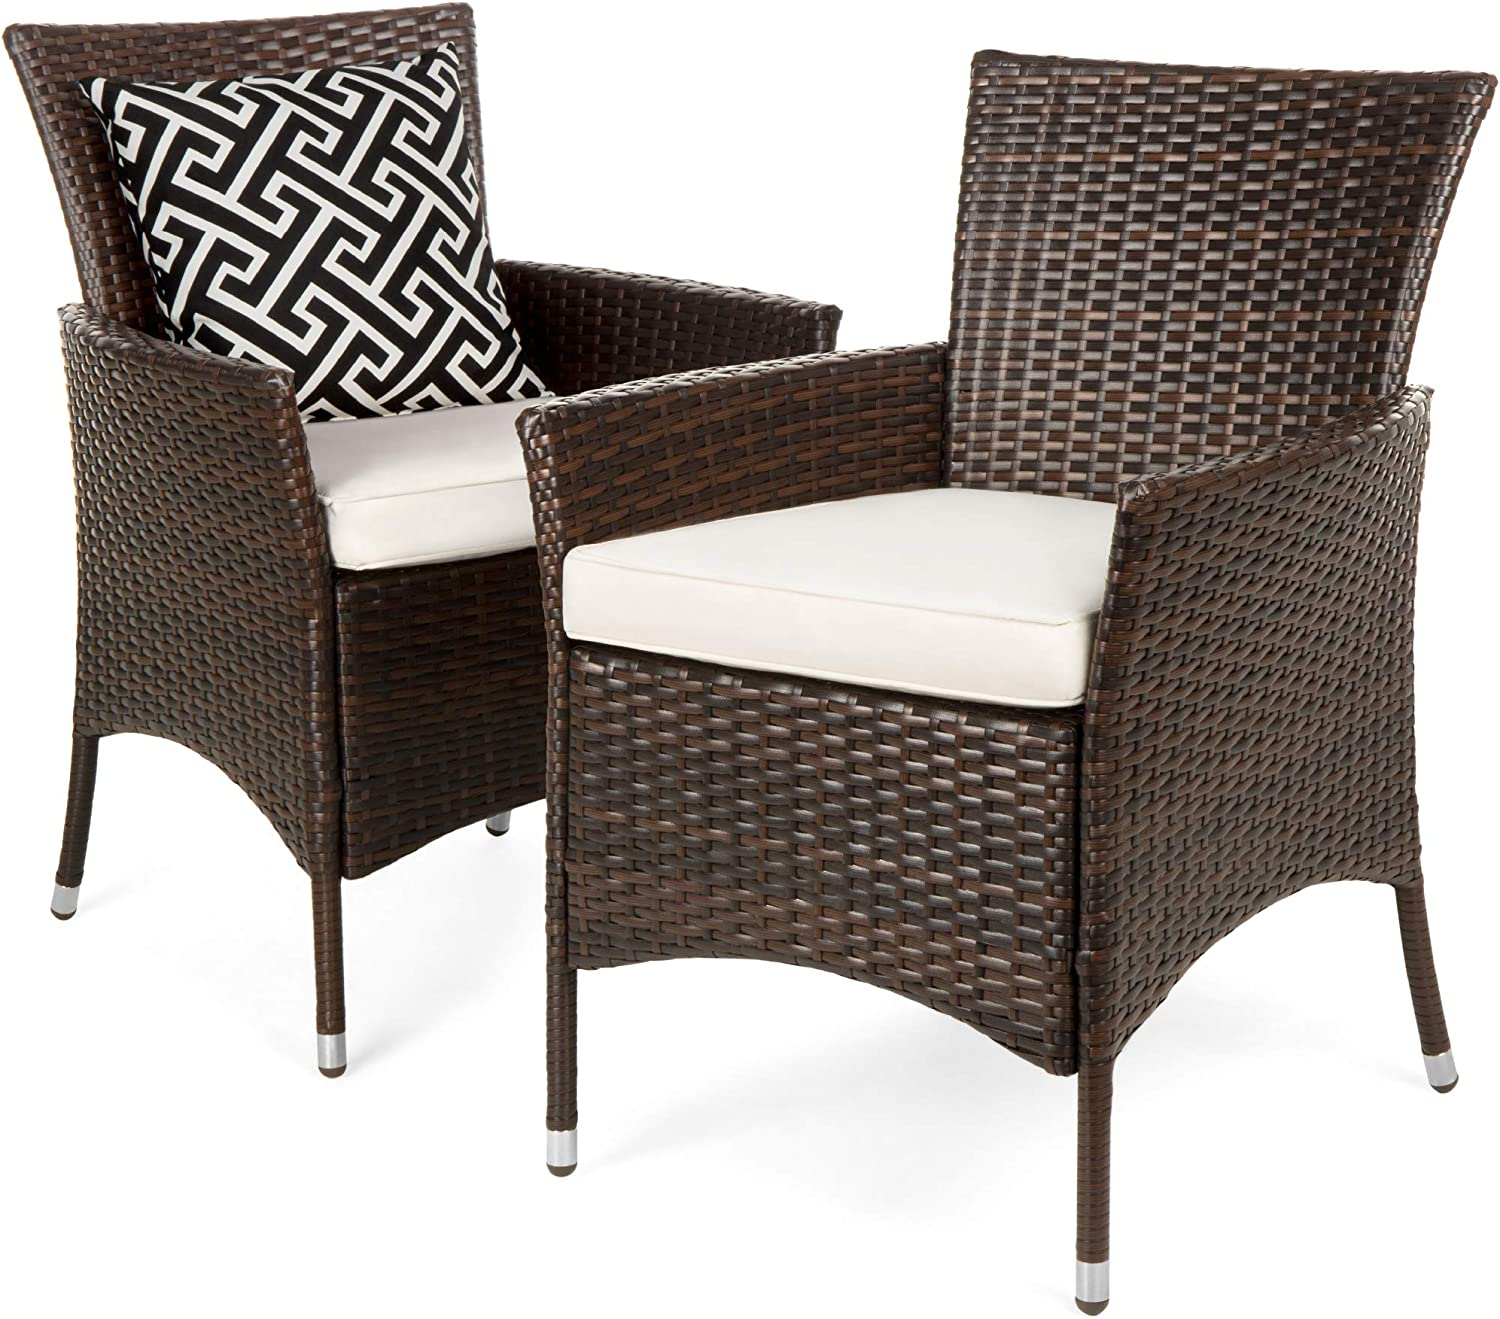 Best Choice Products Set of 3 Modern Contemporary Wicker Patio Furniture  Dining Chairs for Backyard, Poolside, Garden w/Water-Resistant Cushions,